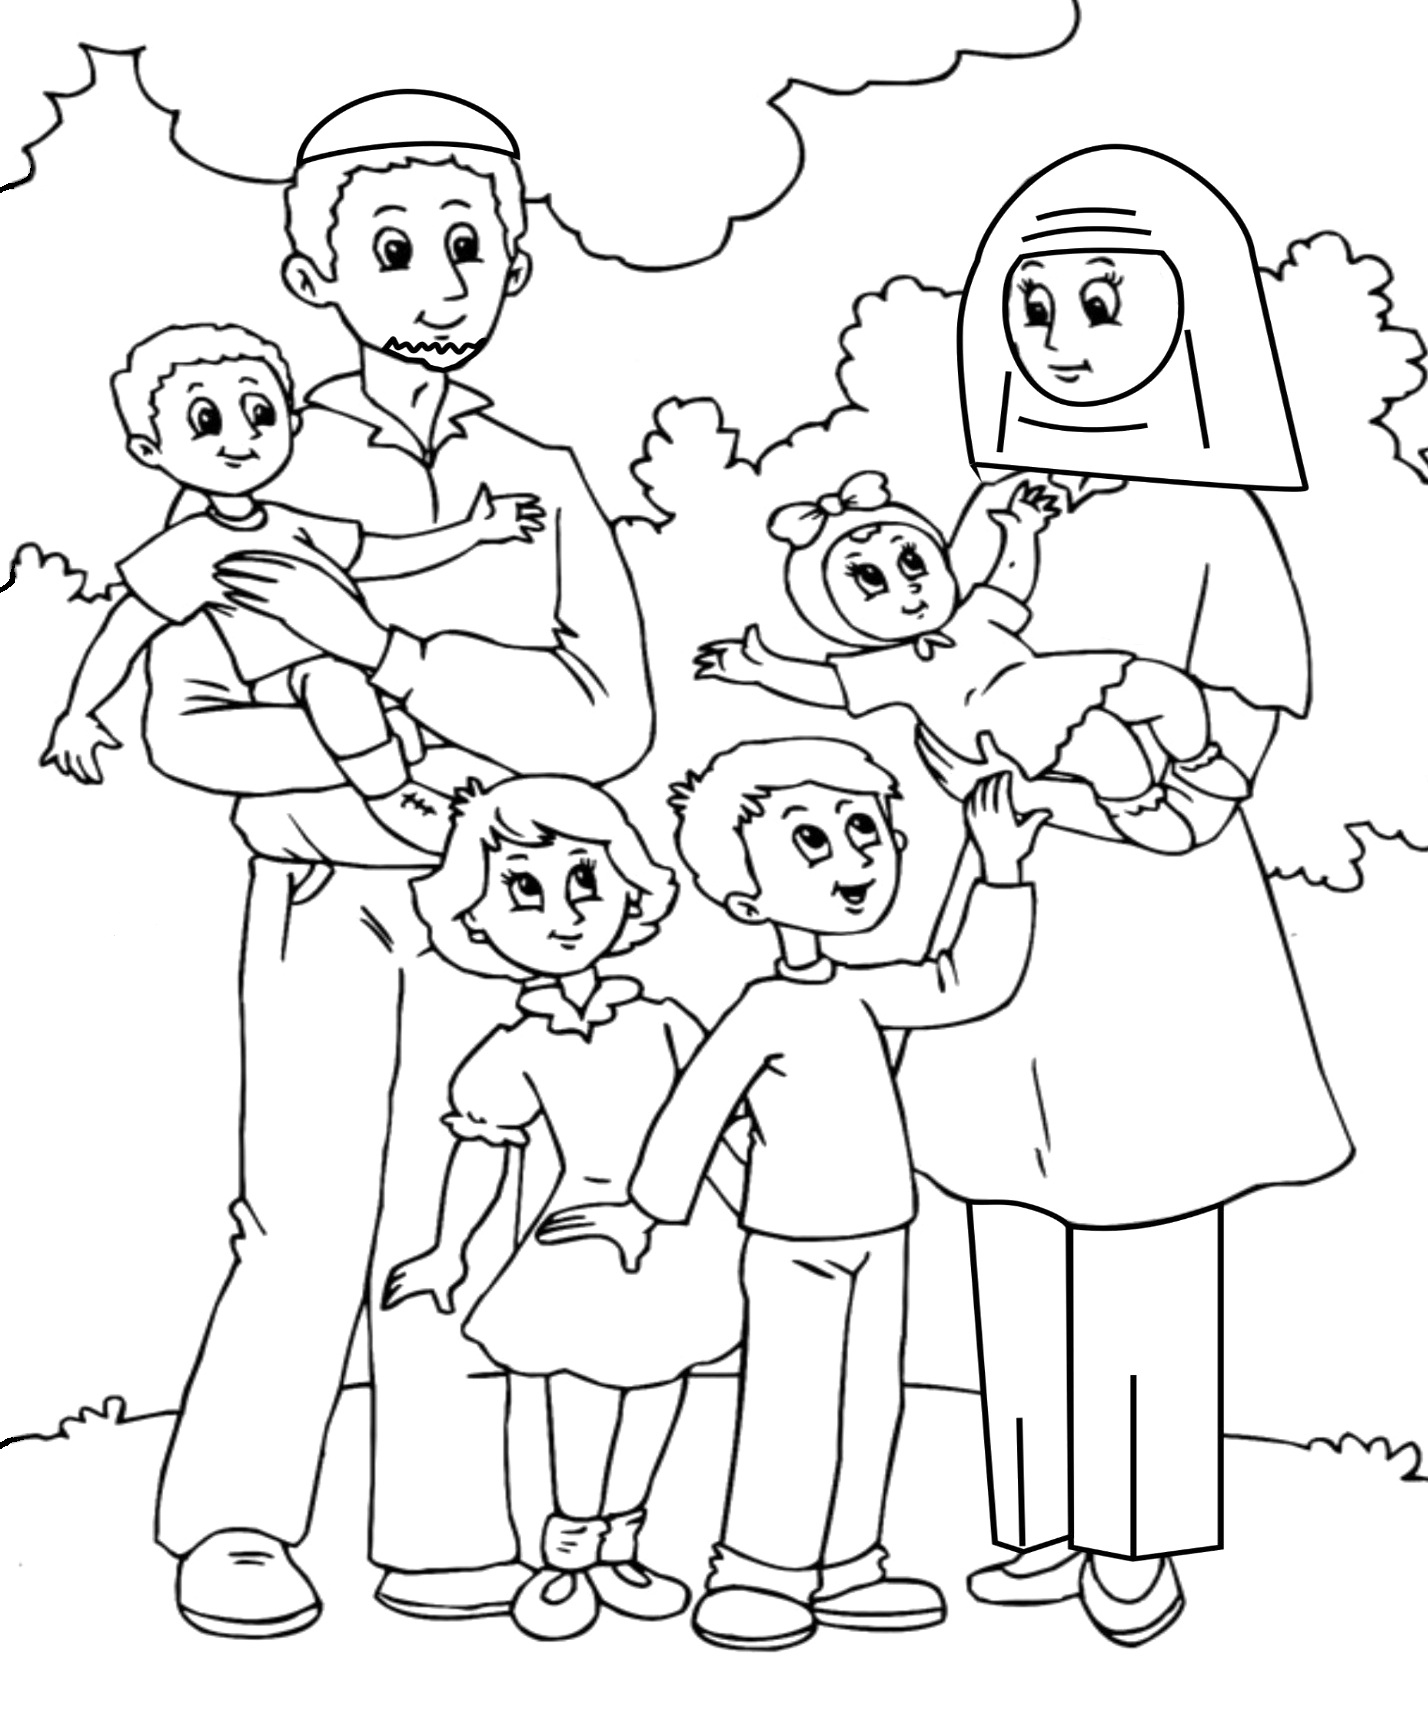 family picture drawing at getdrawings com free for personal use